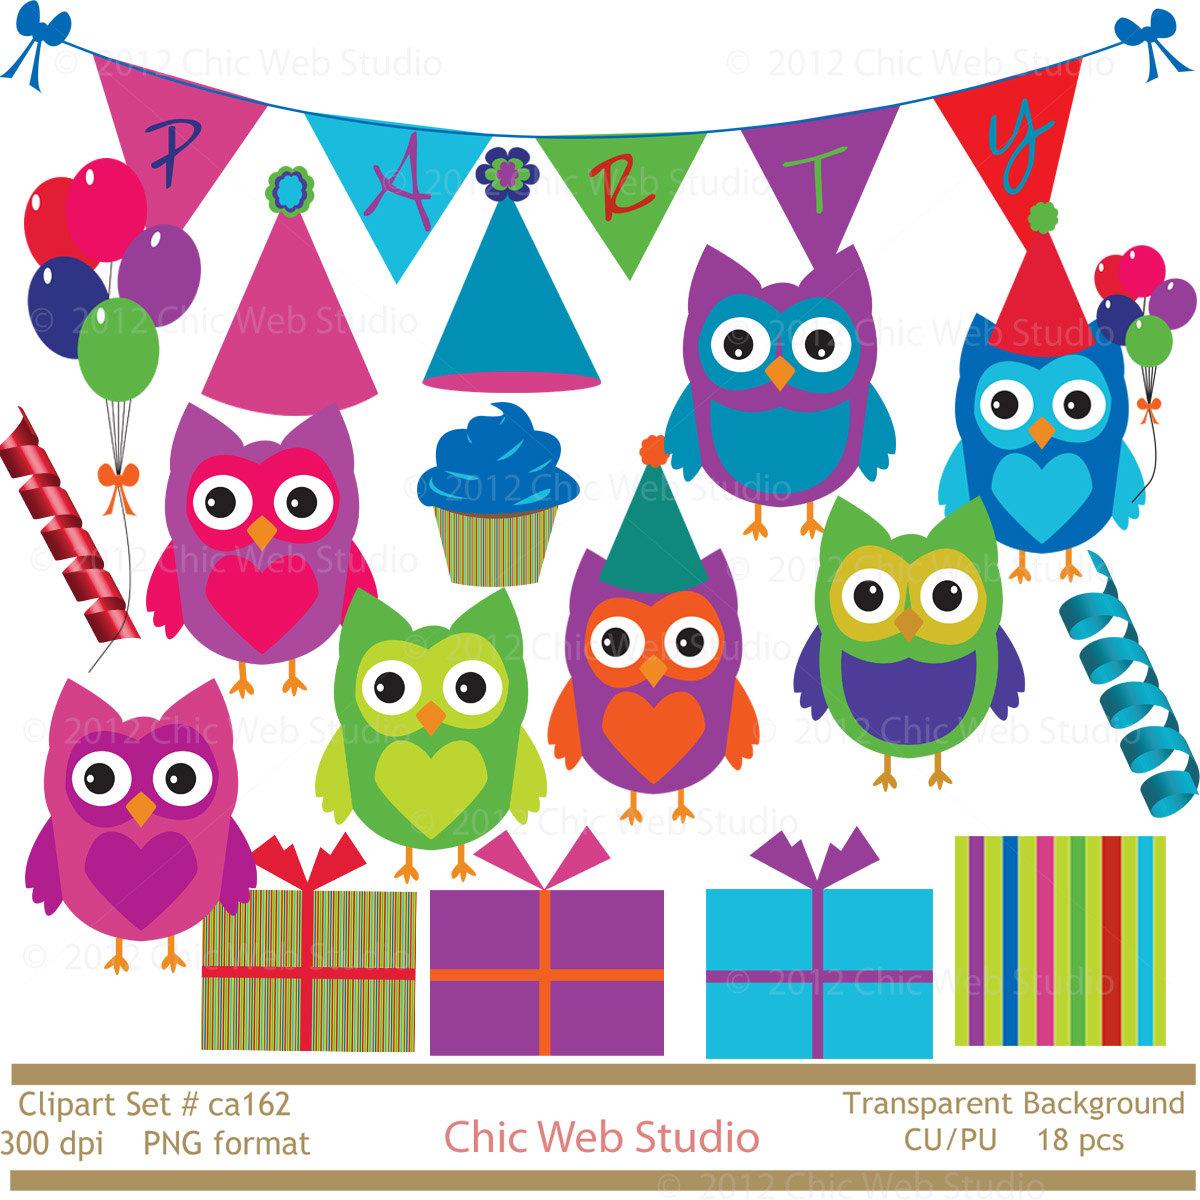 Scrapbook Clip Art Free Owl Birthday Party Ideas Owl Food Gourmet.